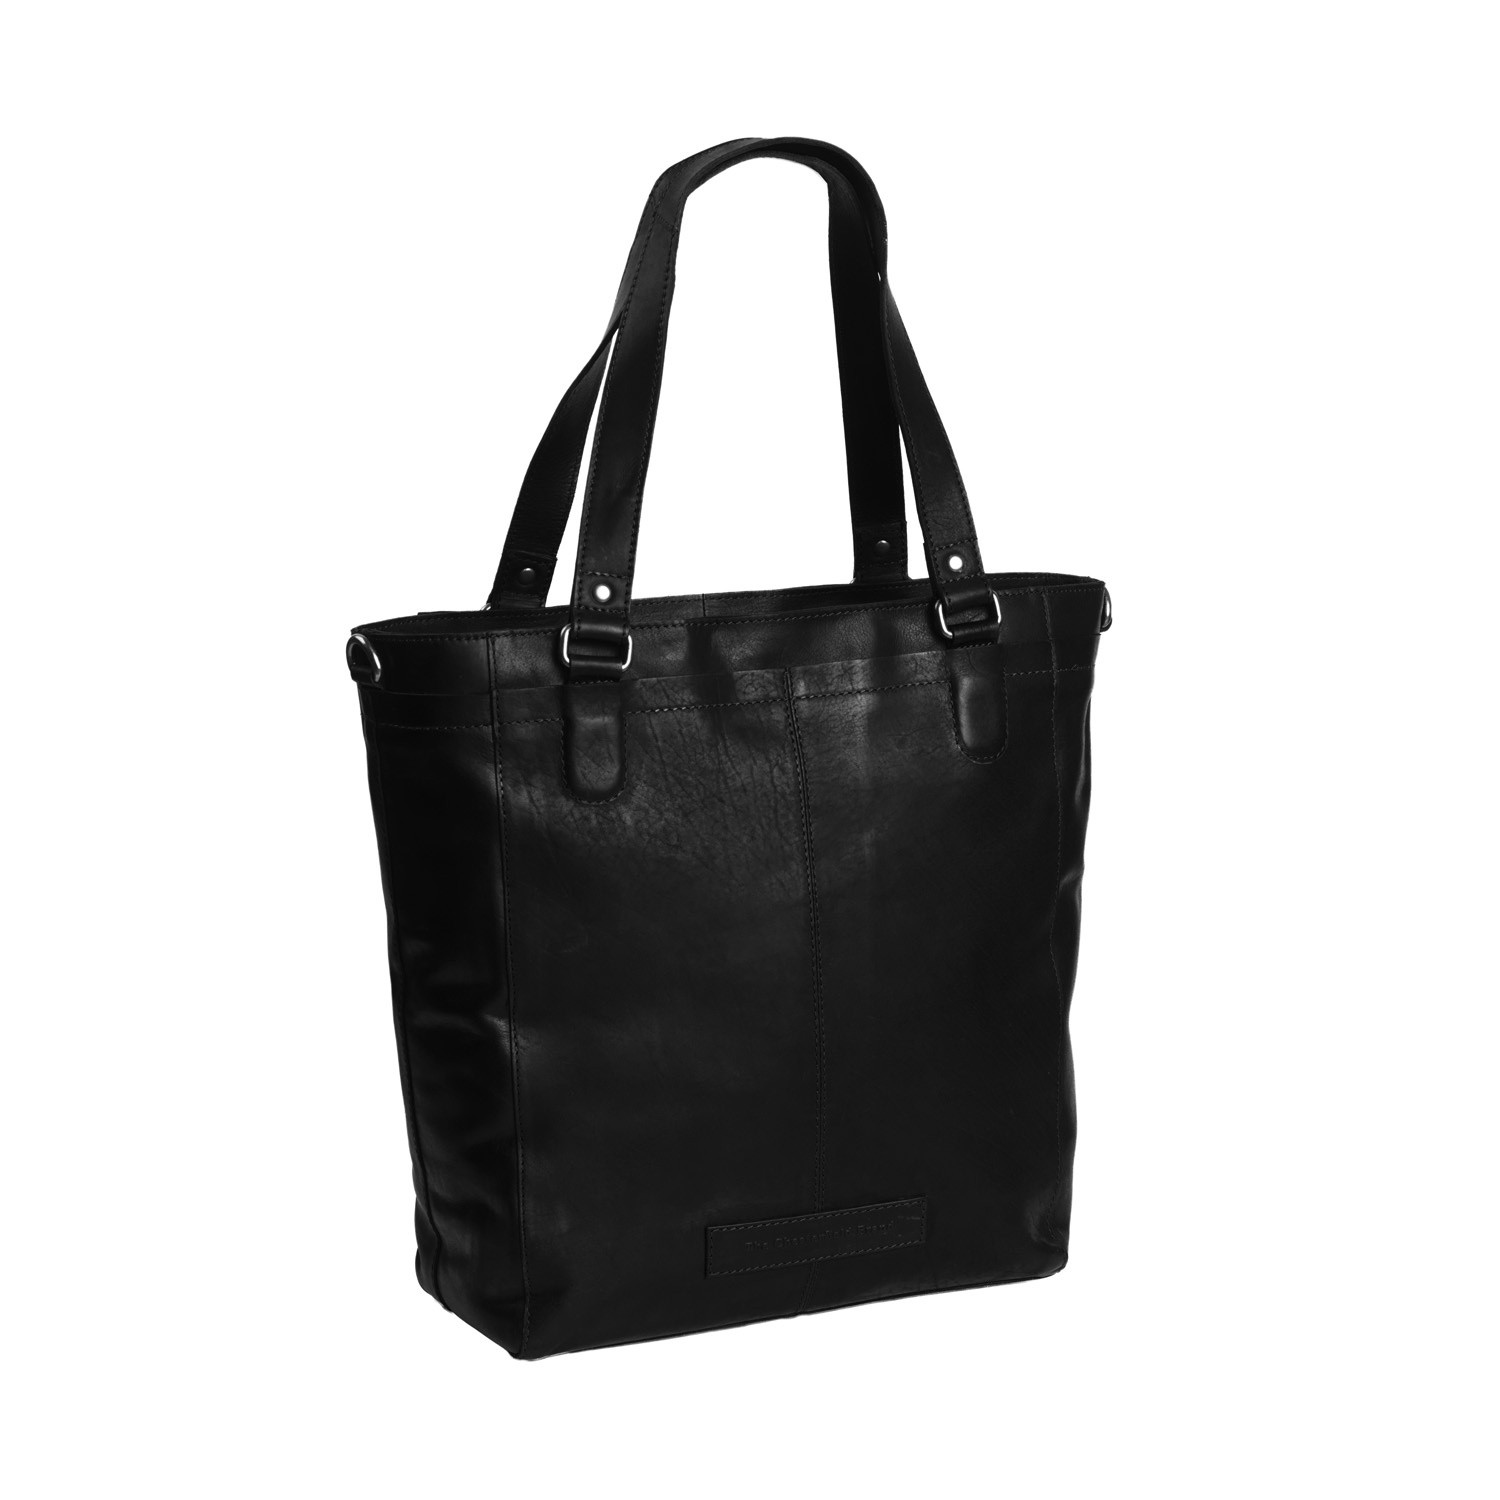 Bilde av Chesterfield Leather Tote Bag Black Jade